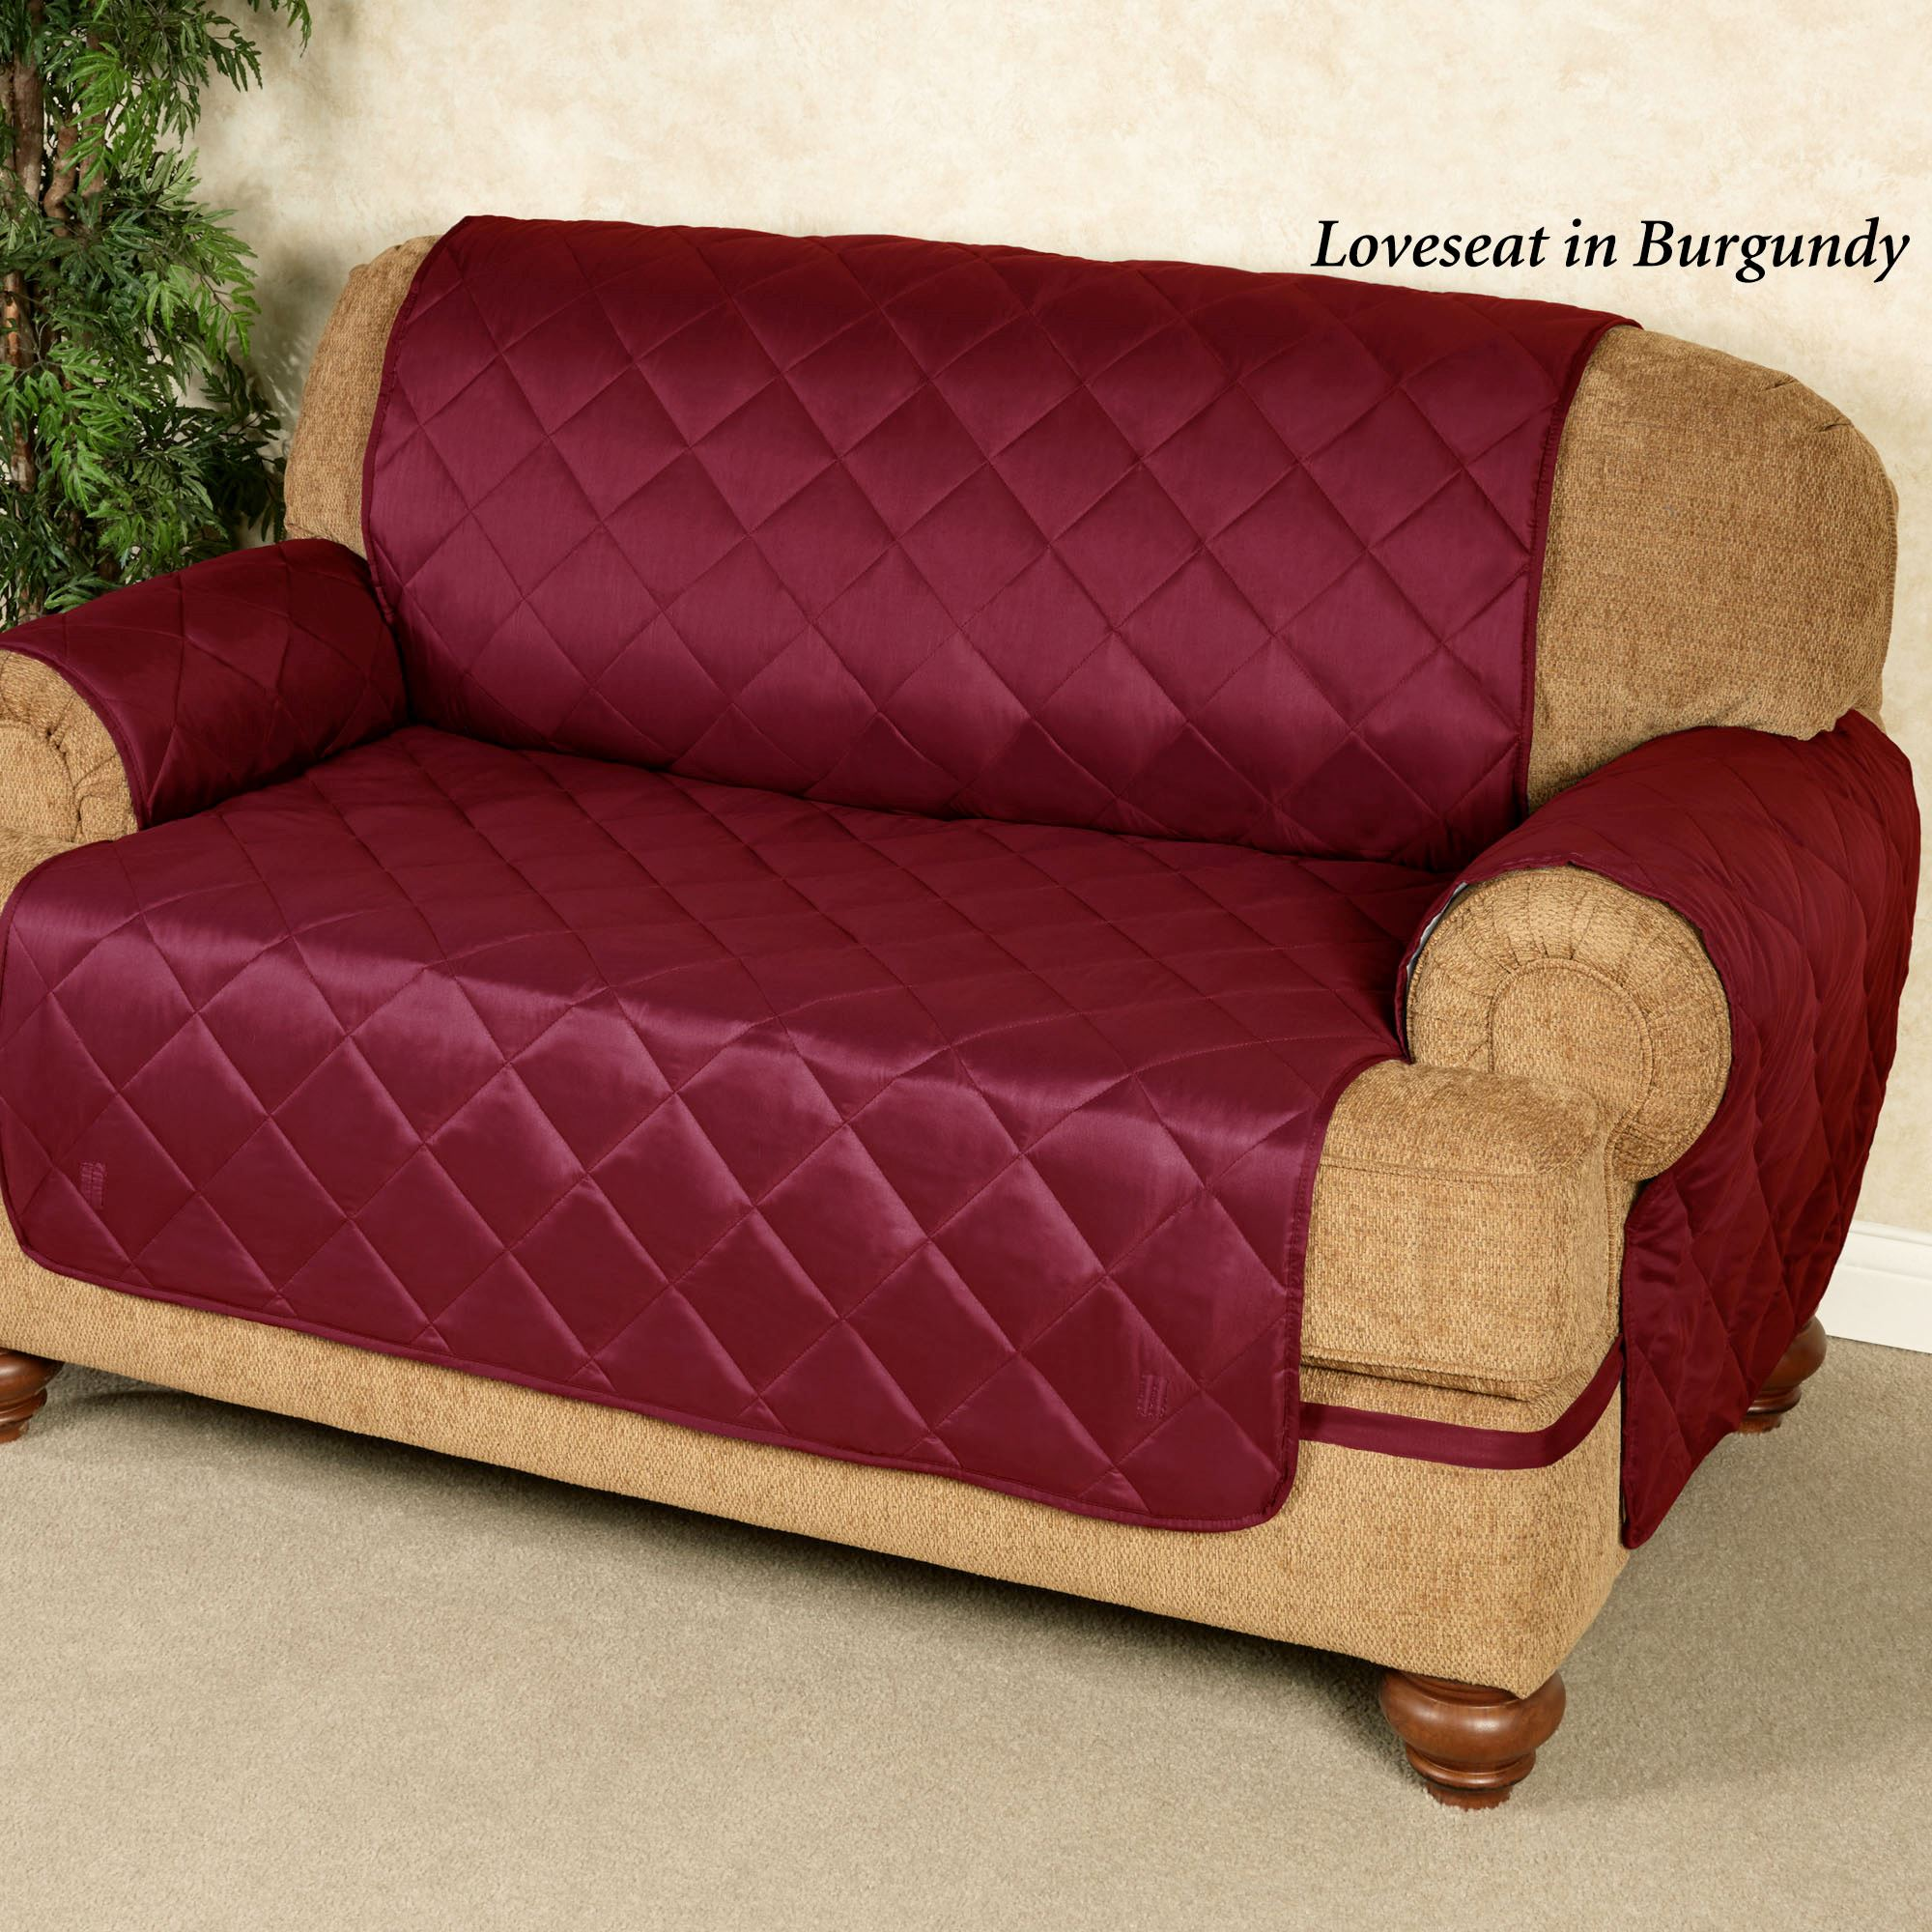 walmart couch recliner com loveseat stretch reclining and talentneeds covers cover slipcover at sofa burgundy amazon